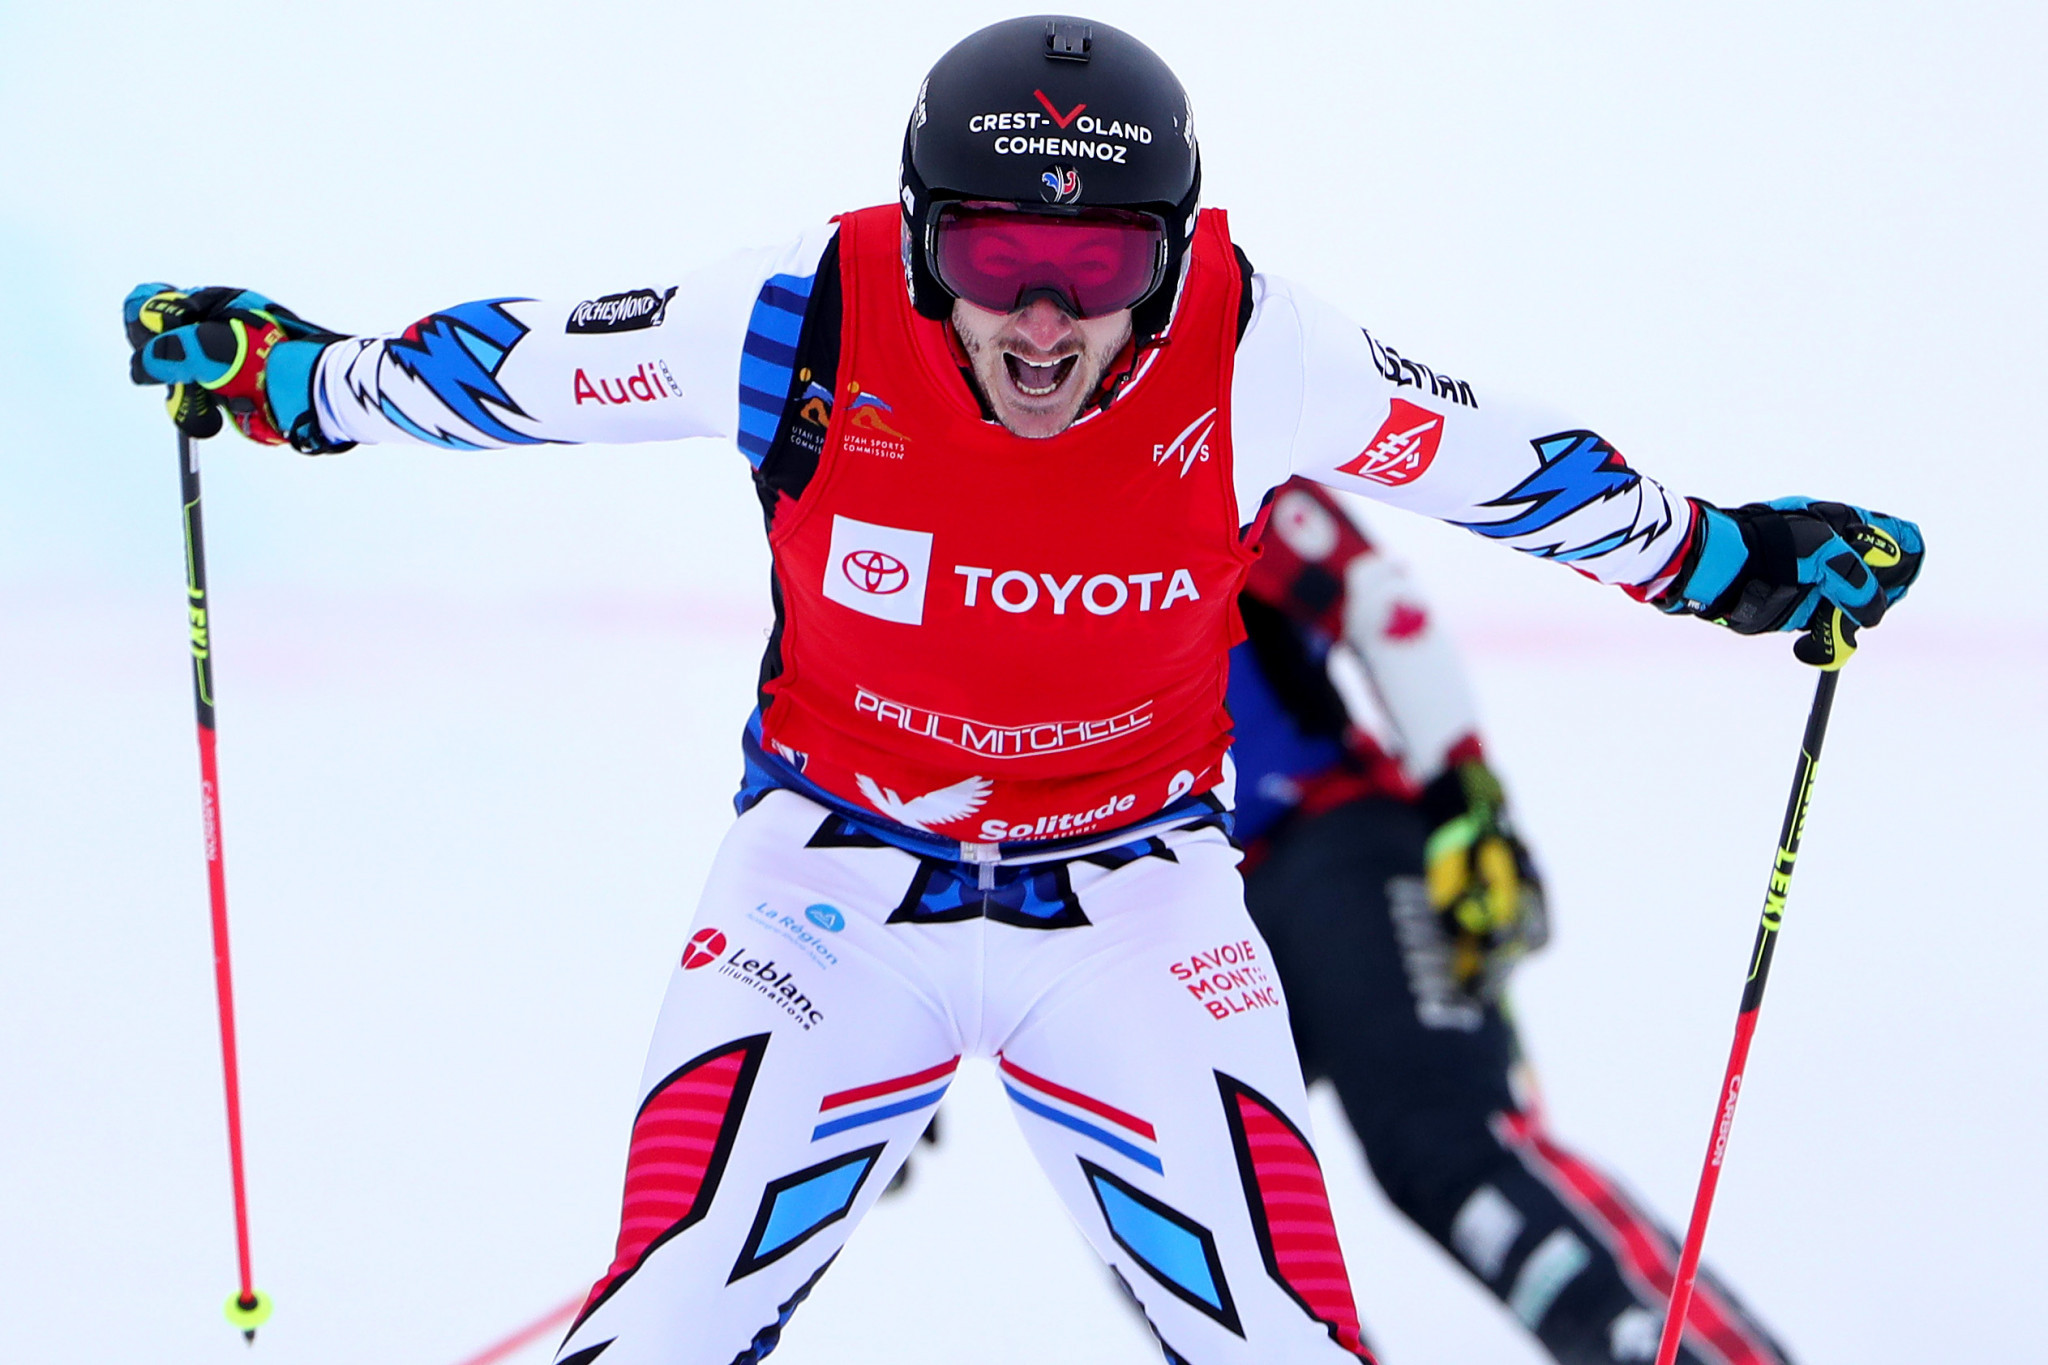 Newly-crowned world champion Place tops men's qualification at FIS Ski Cross World Cup